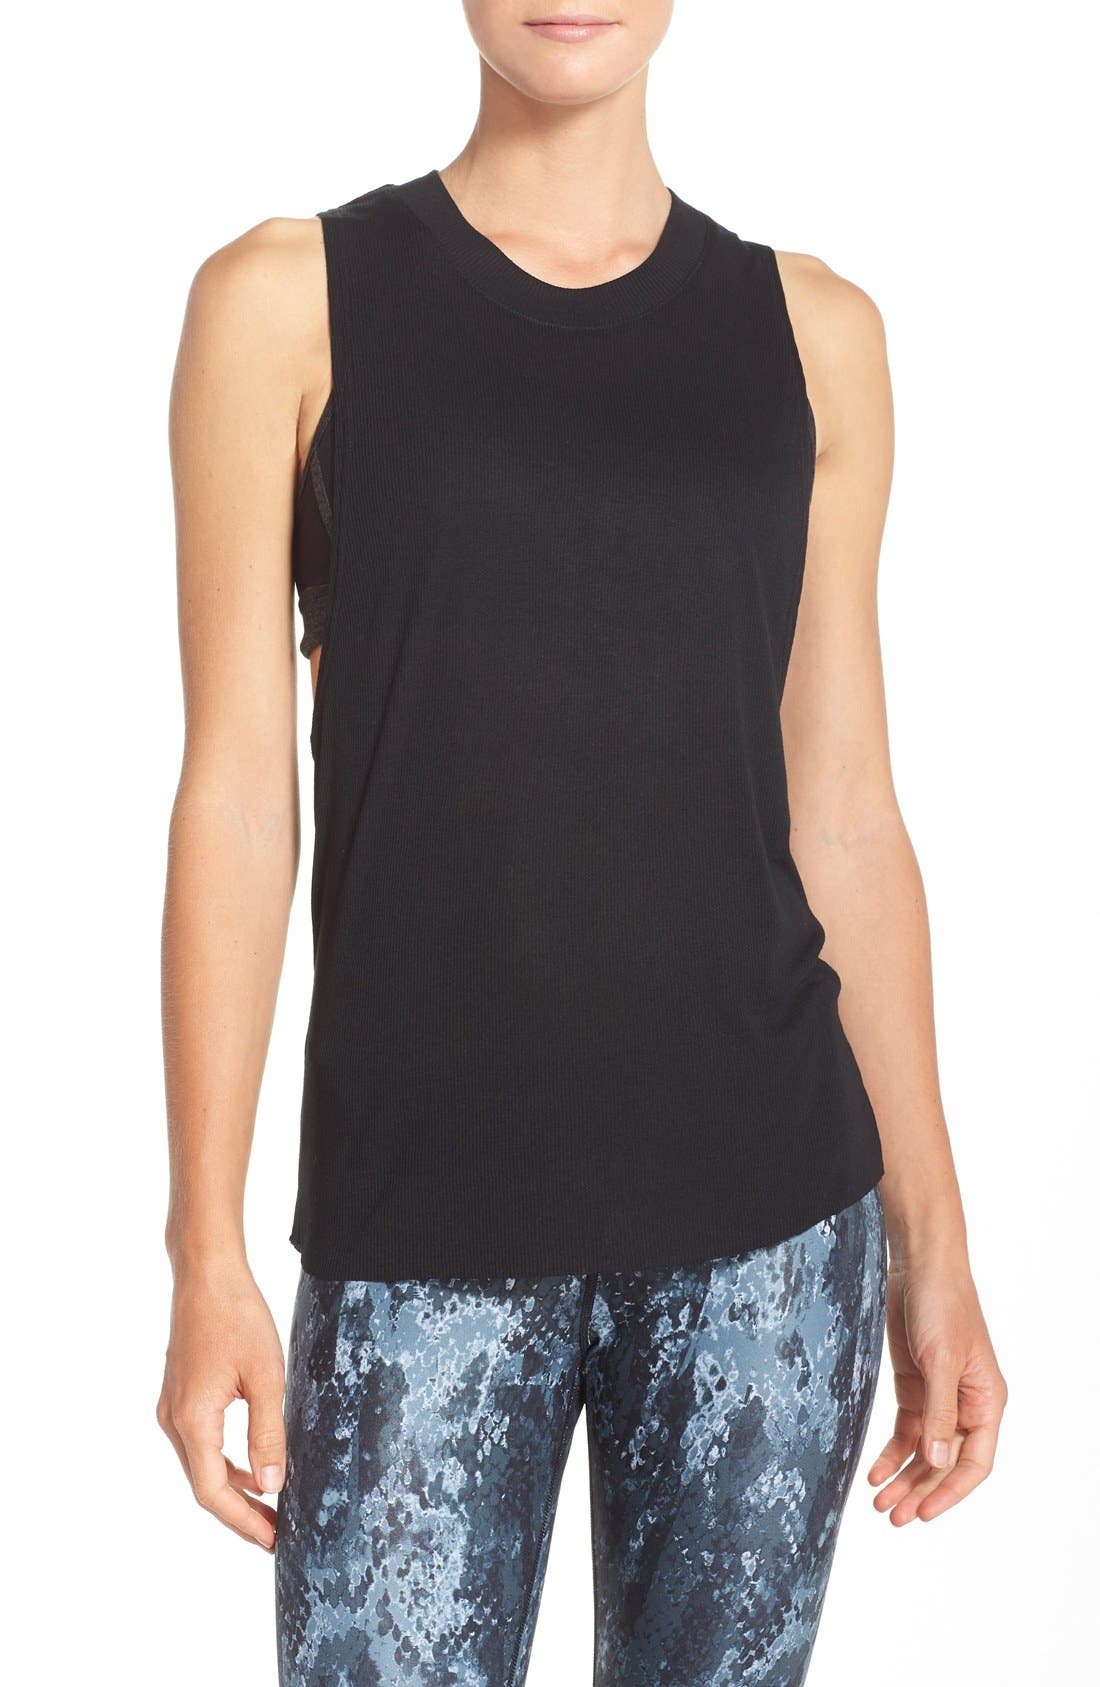 HEAT WAVE RIBBED MUSCLE TEE from Nordstrom